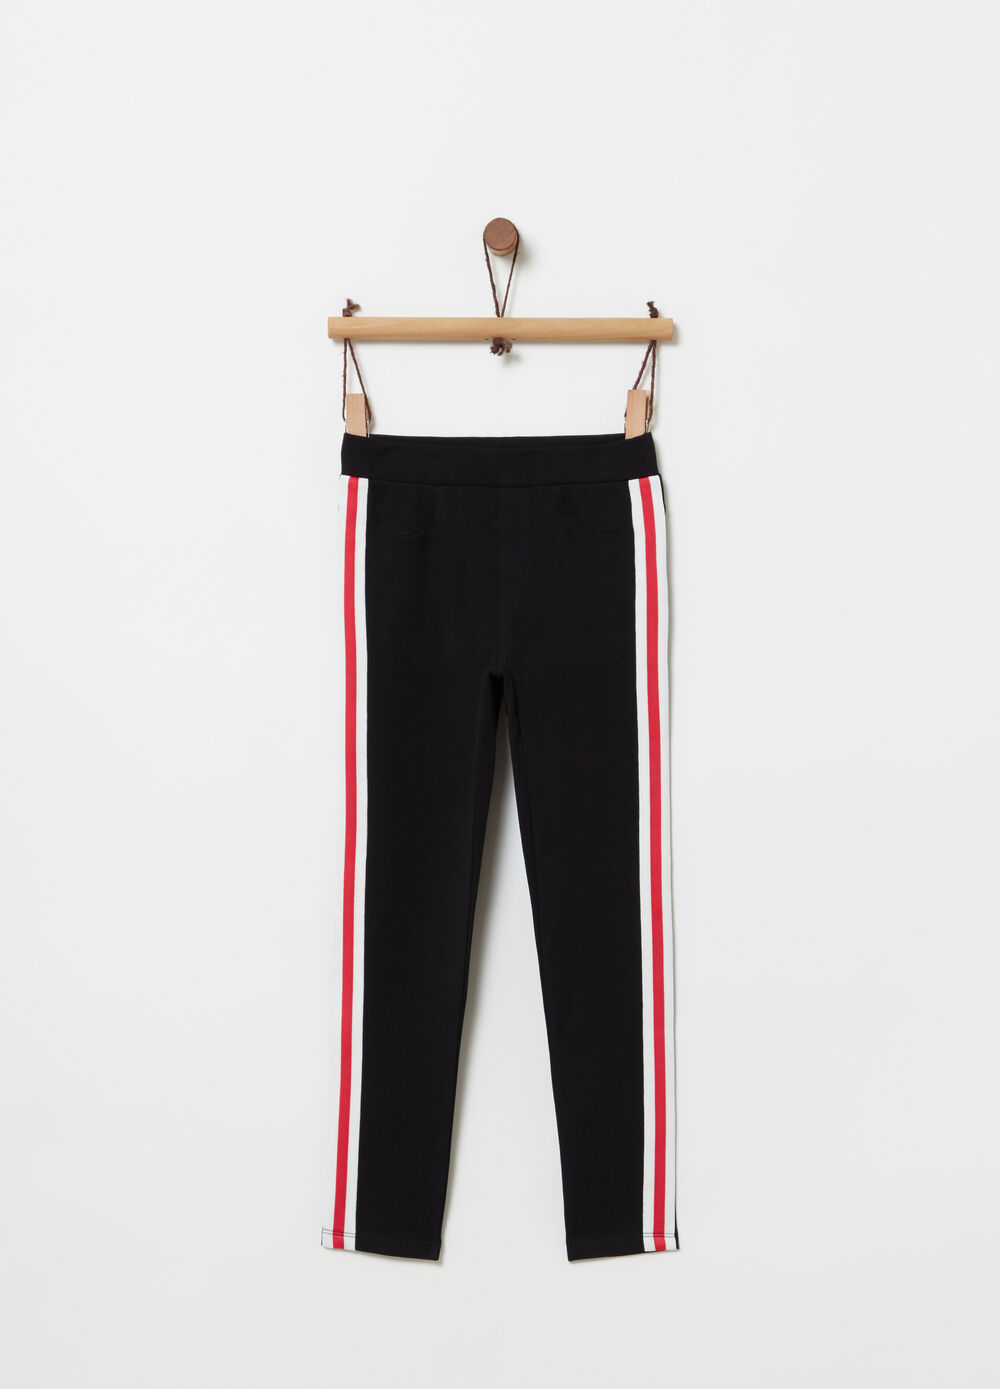 Jeggings with striped bands on the sides